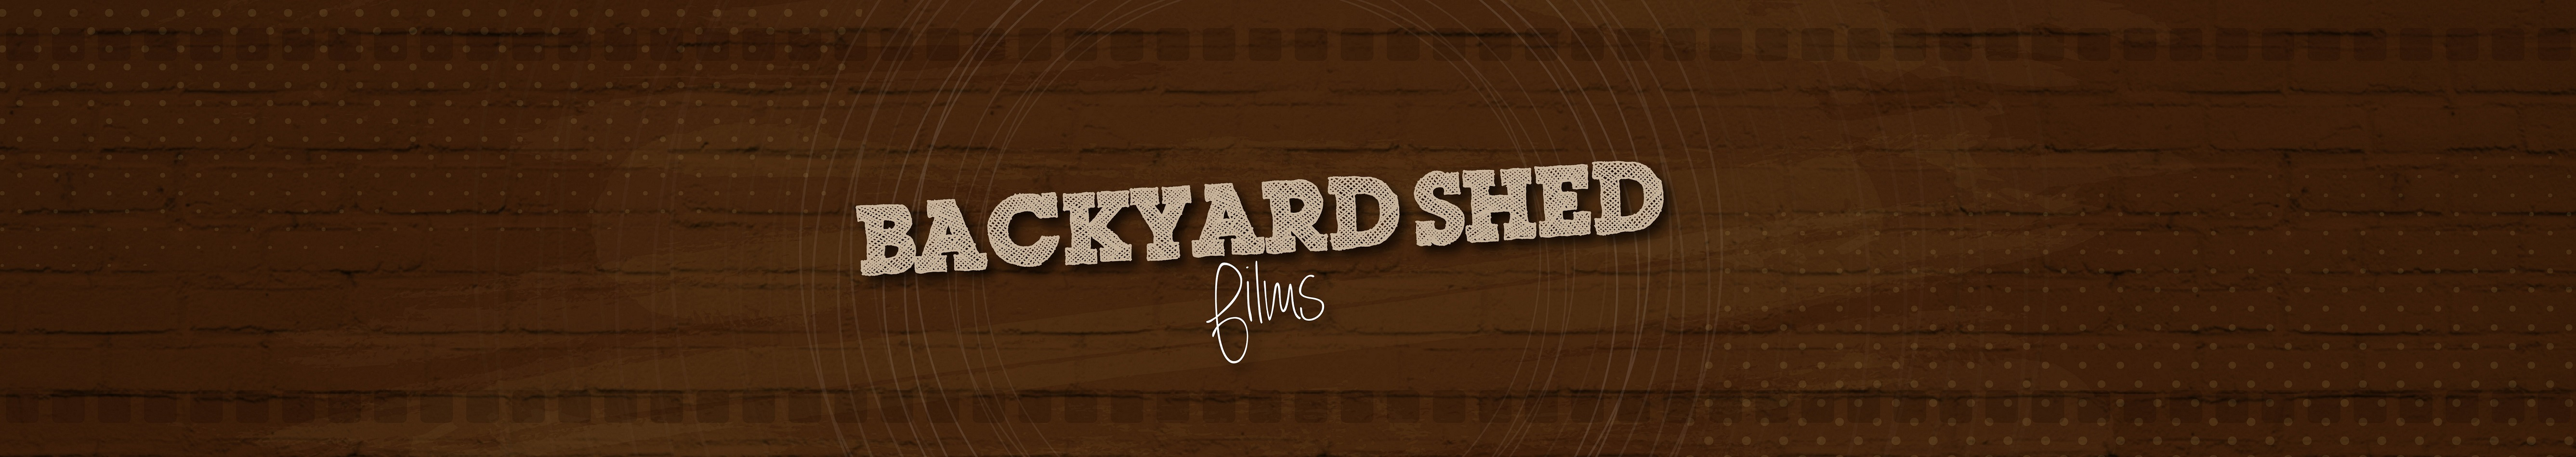 Television | Backyard Shed Films